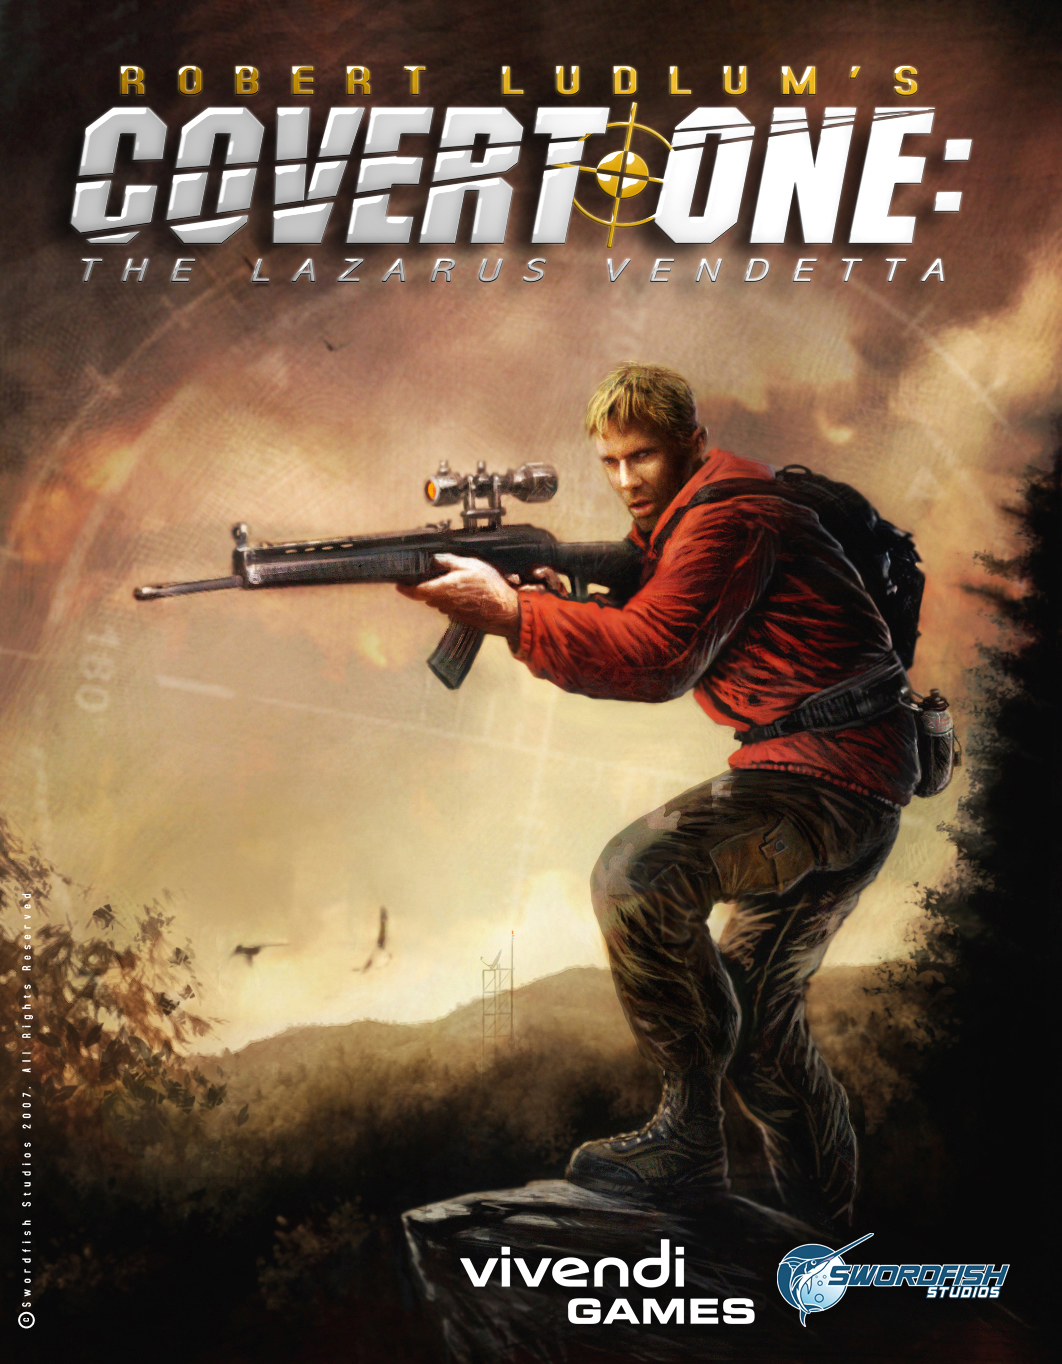 covert 1 cover proposition by JohnMcCambridge